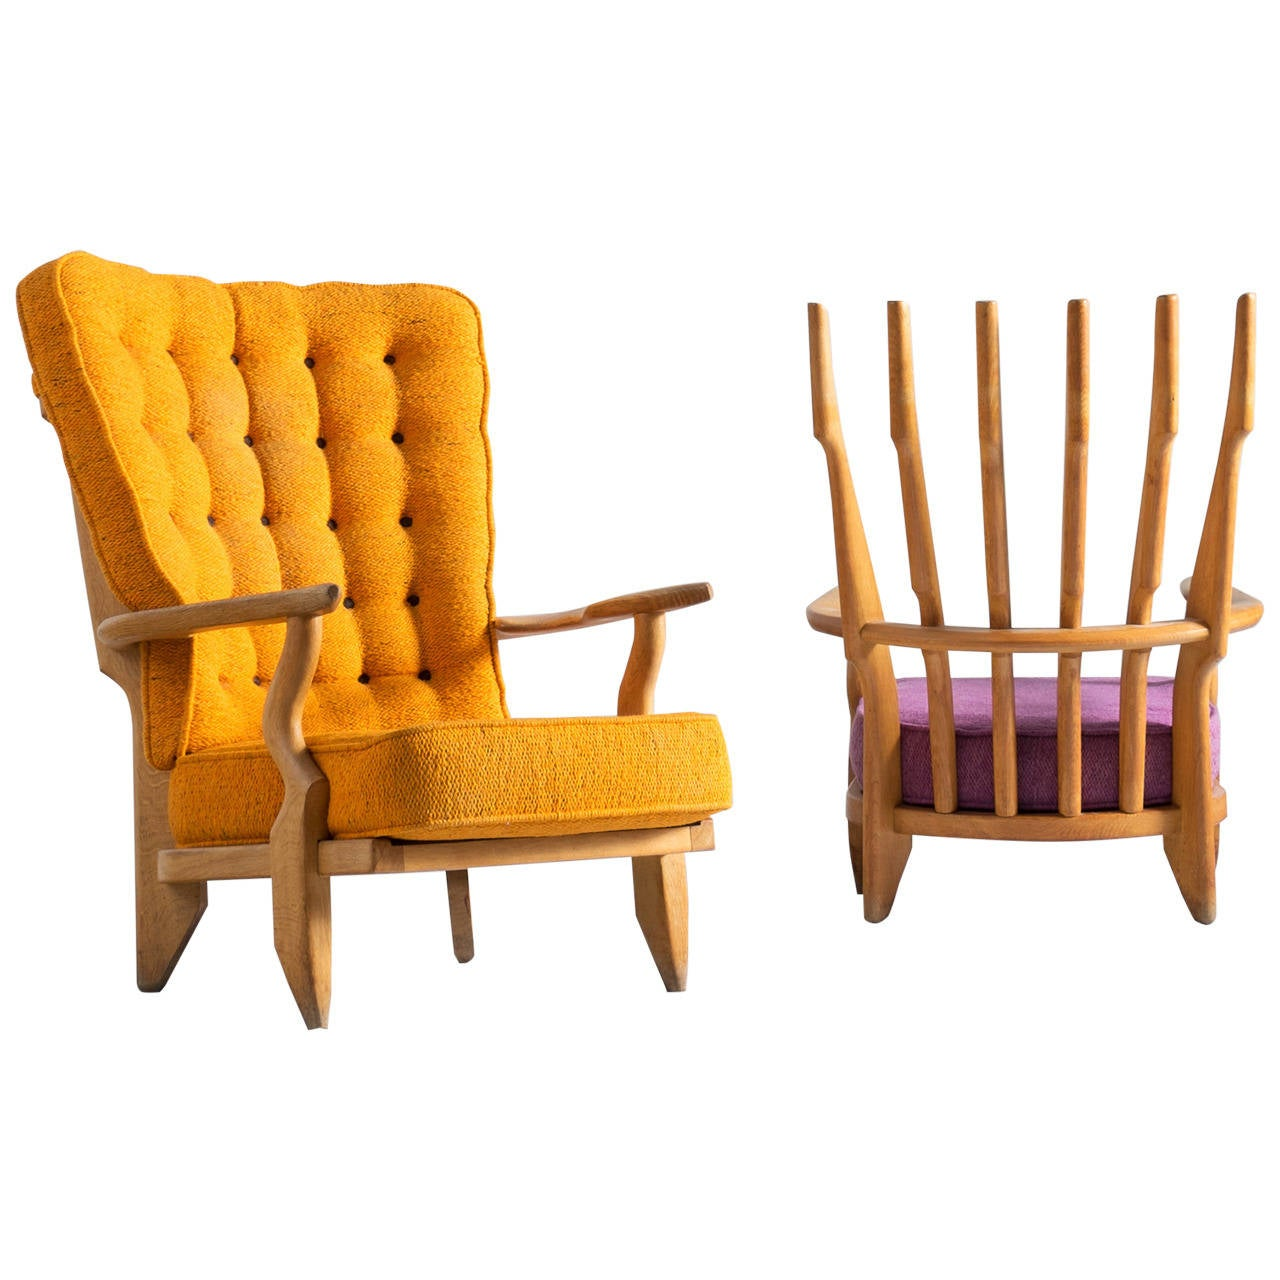 Two High Back Lounge Chairs by Guillerme and Chambron in Solid Oak 1